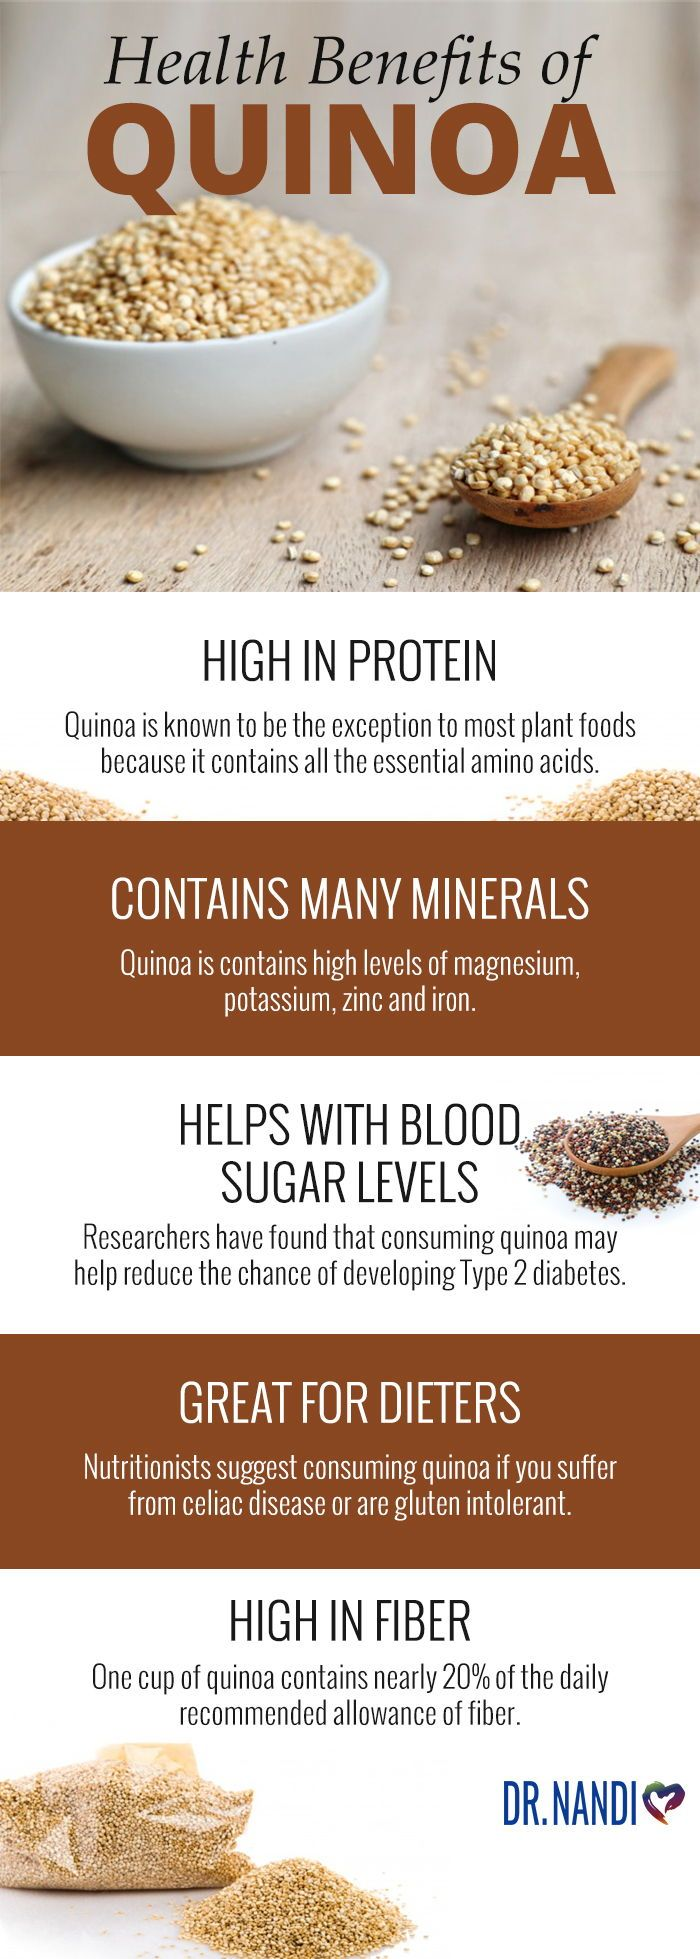 High in Fiber  Great for Dieters  Helps With Blood Sugar Levels  Contains Many Minerals  High in Protein  Health Benefits  Quinoa  Quinoa Benefits  Clean Eating  Healthy...